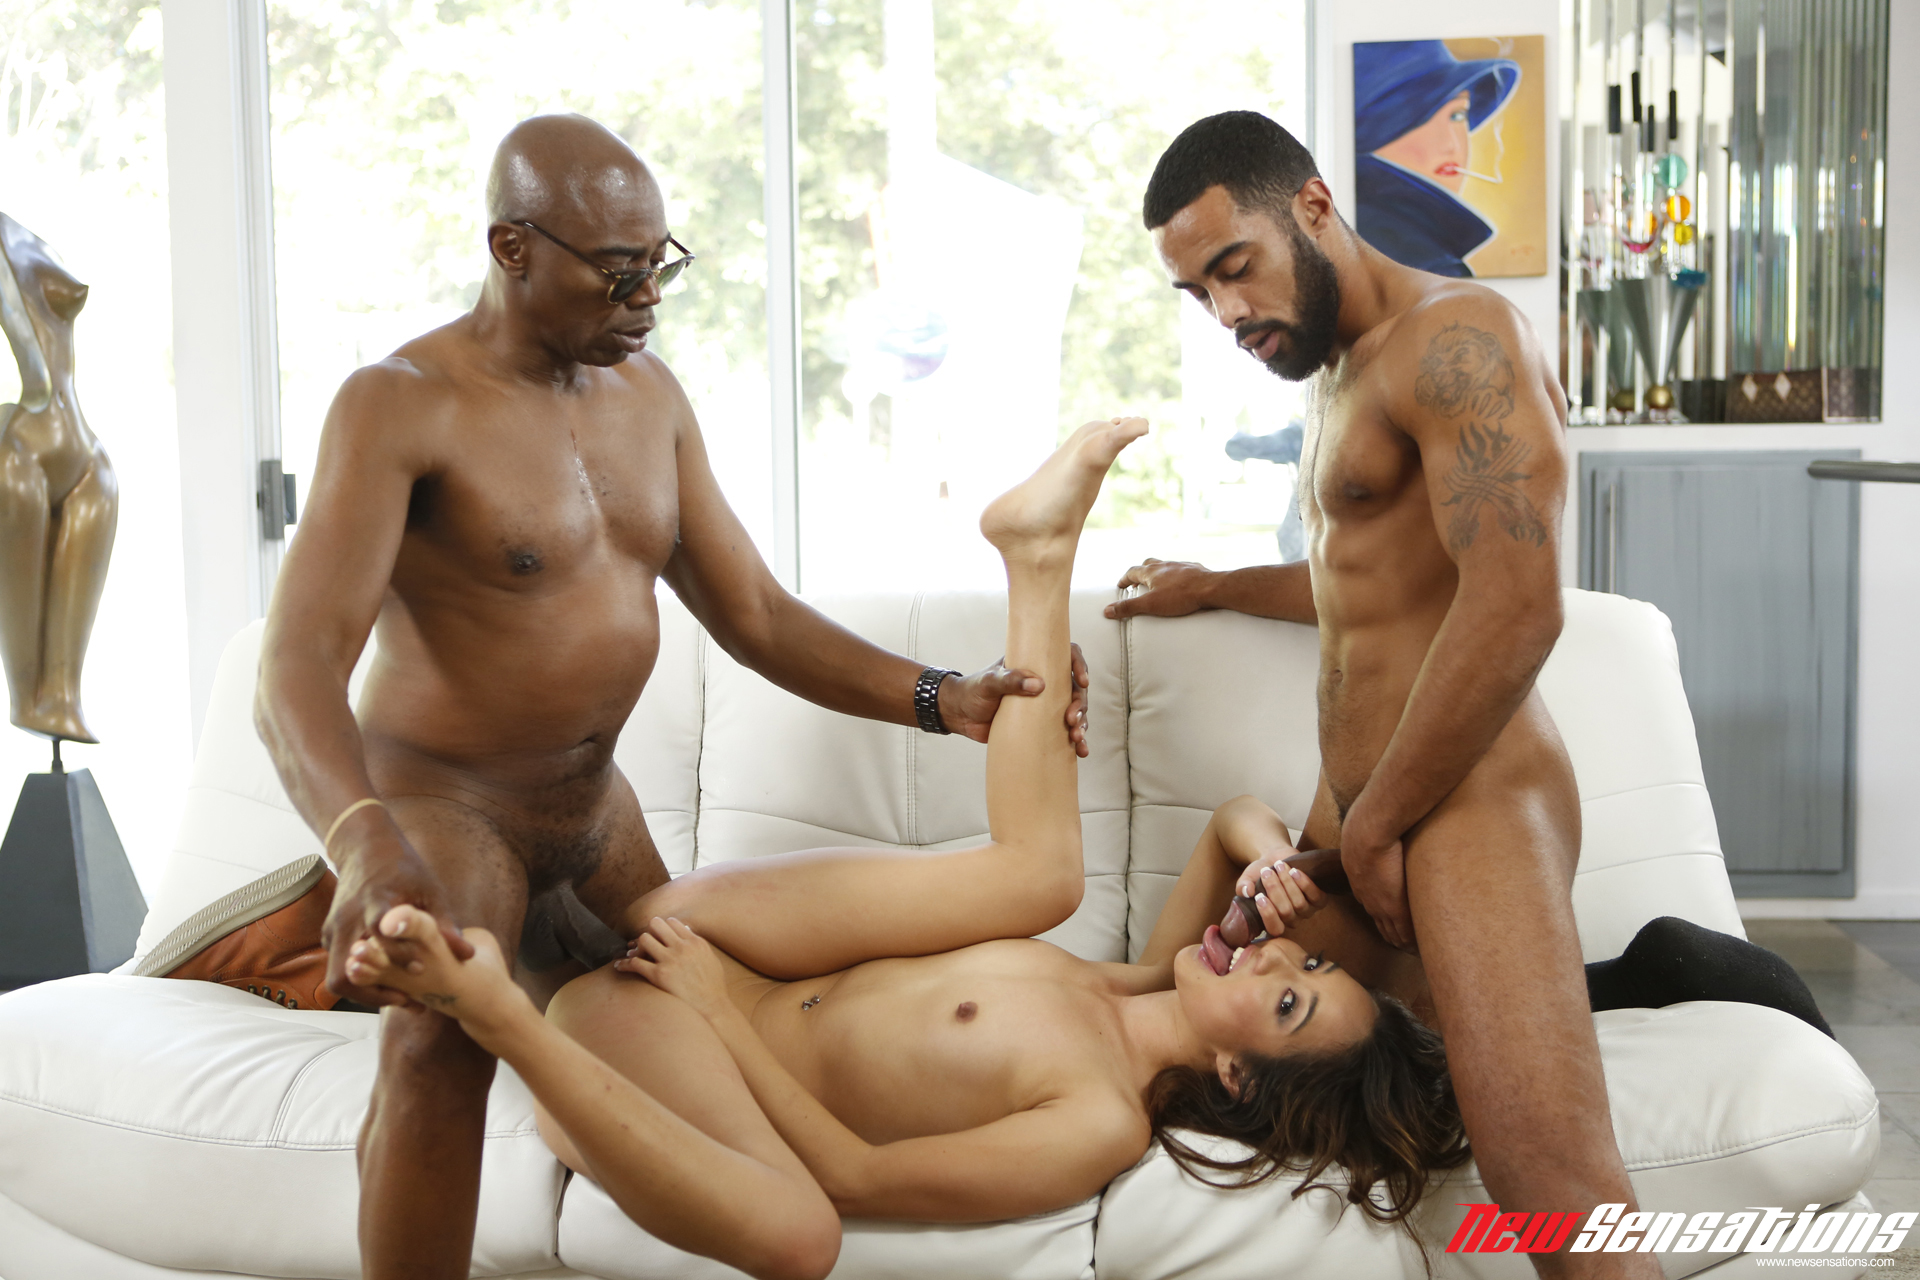 Gangbang Session With A Fast Boy